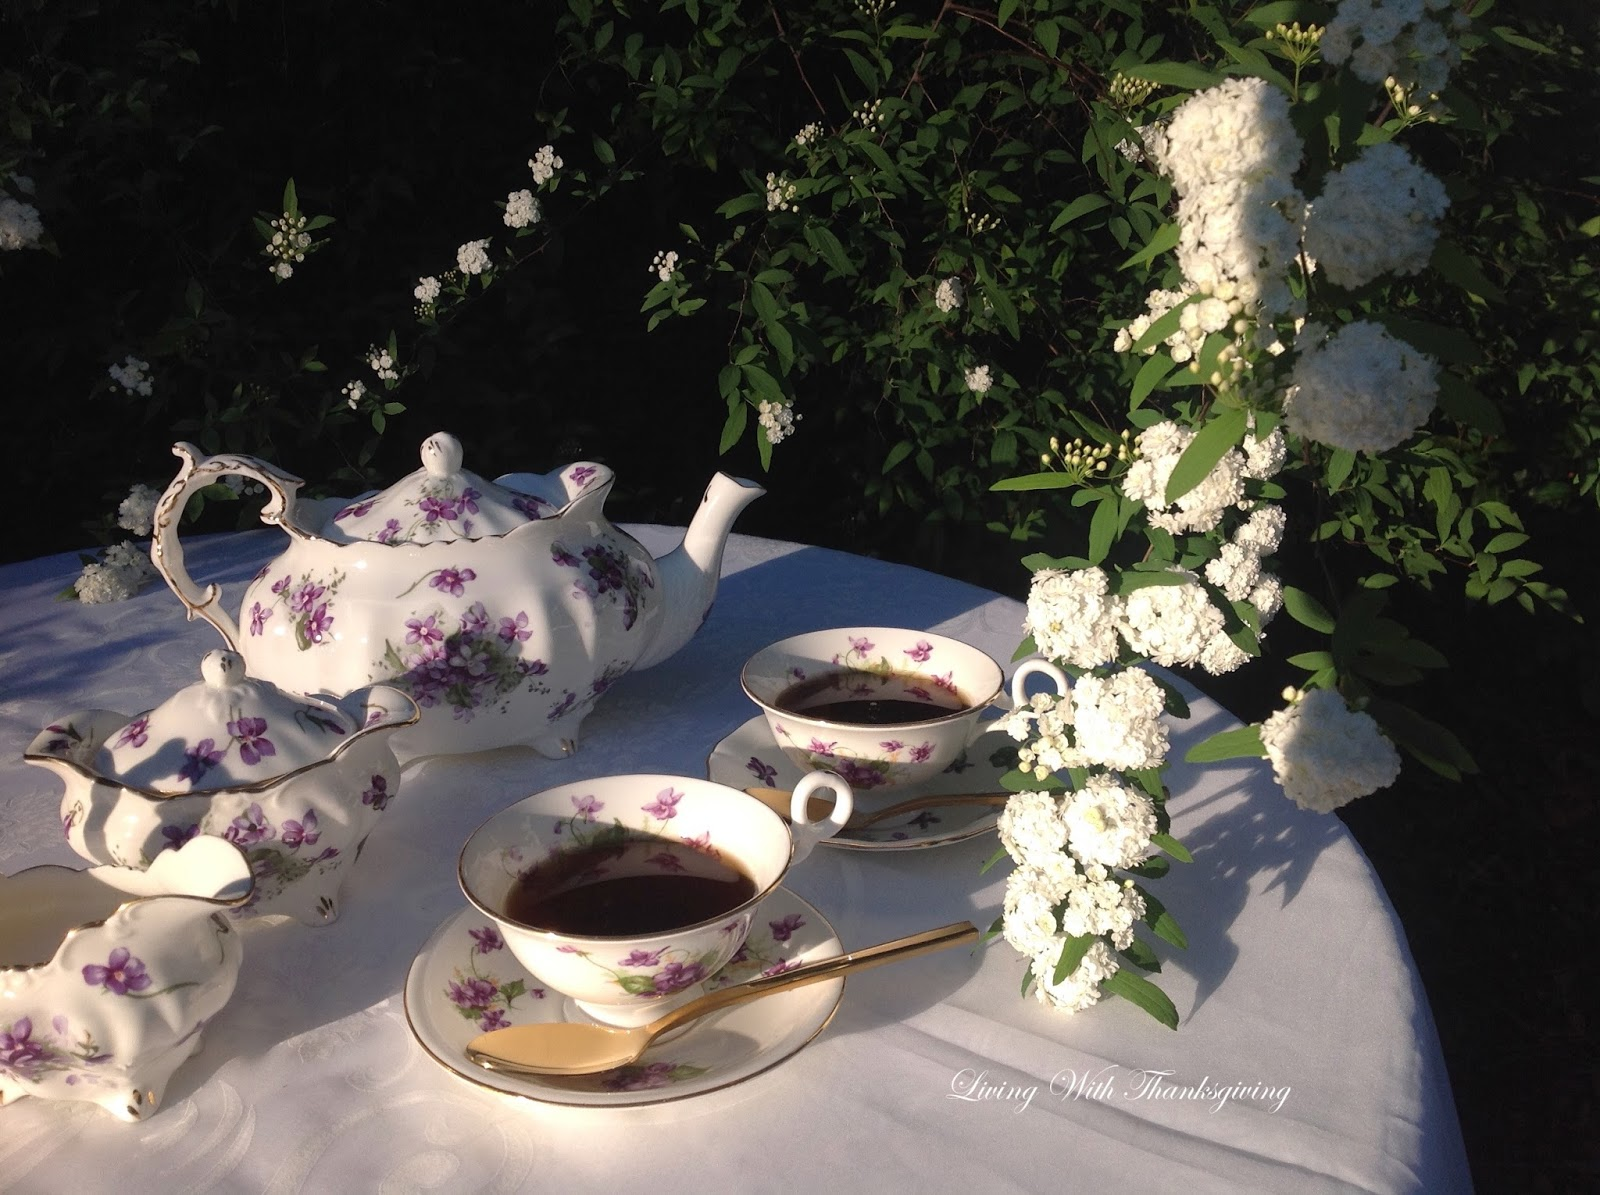 Heirloom China Tea Set Living With Thanksgiving